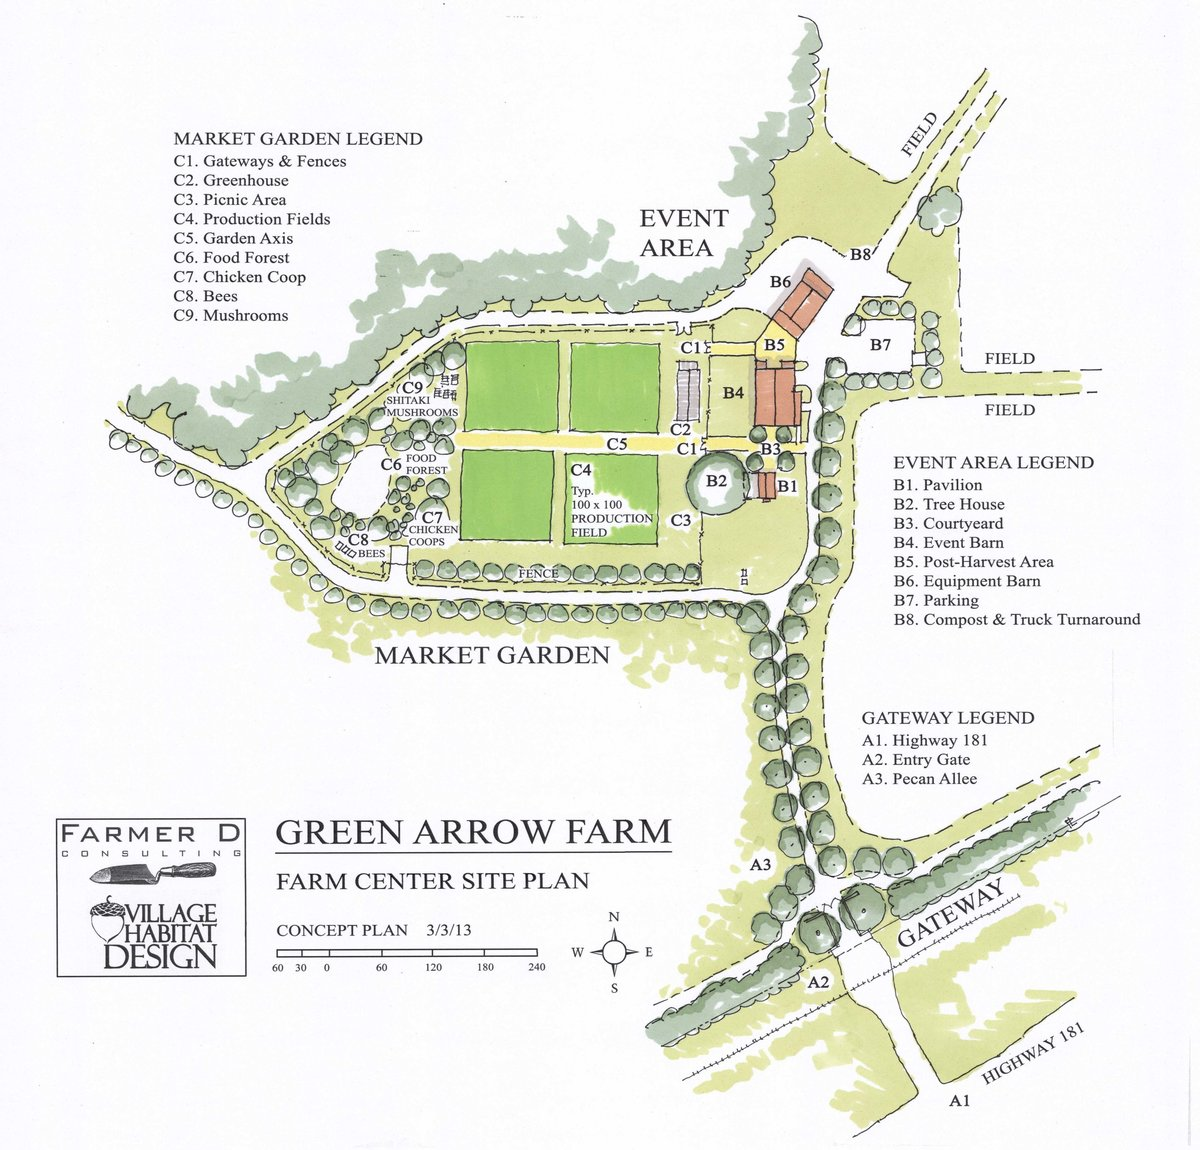 FARM CENTER SITE PLAN